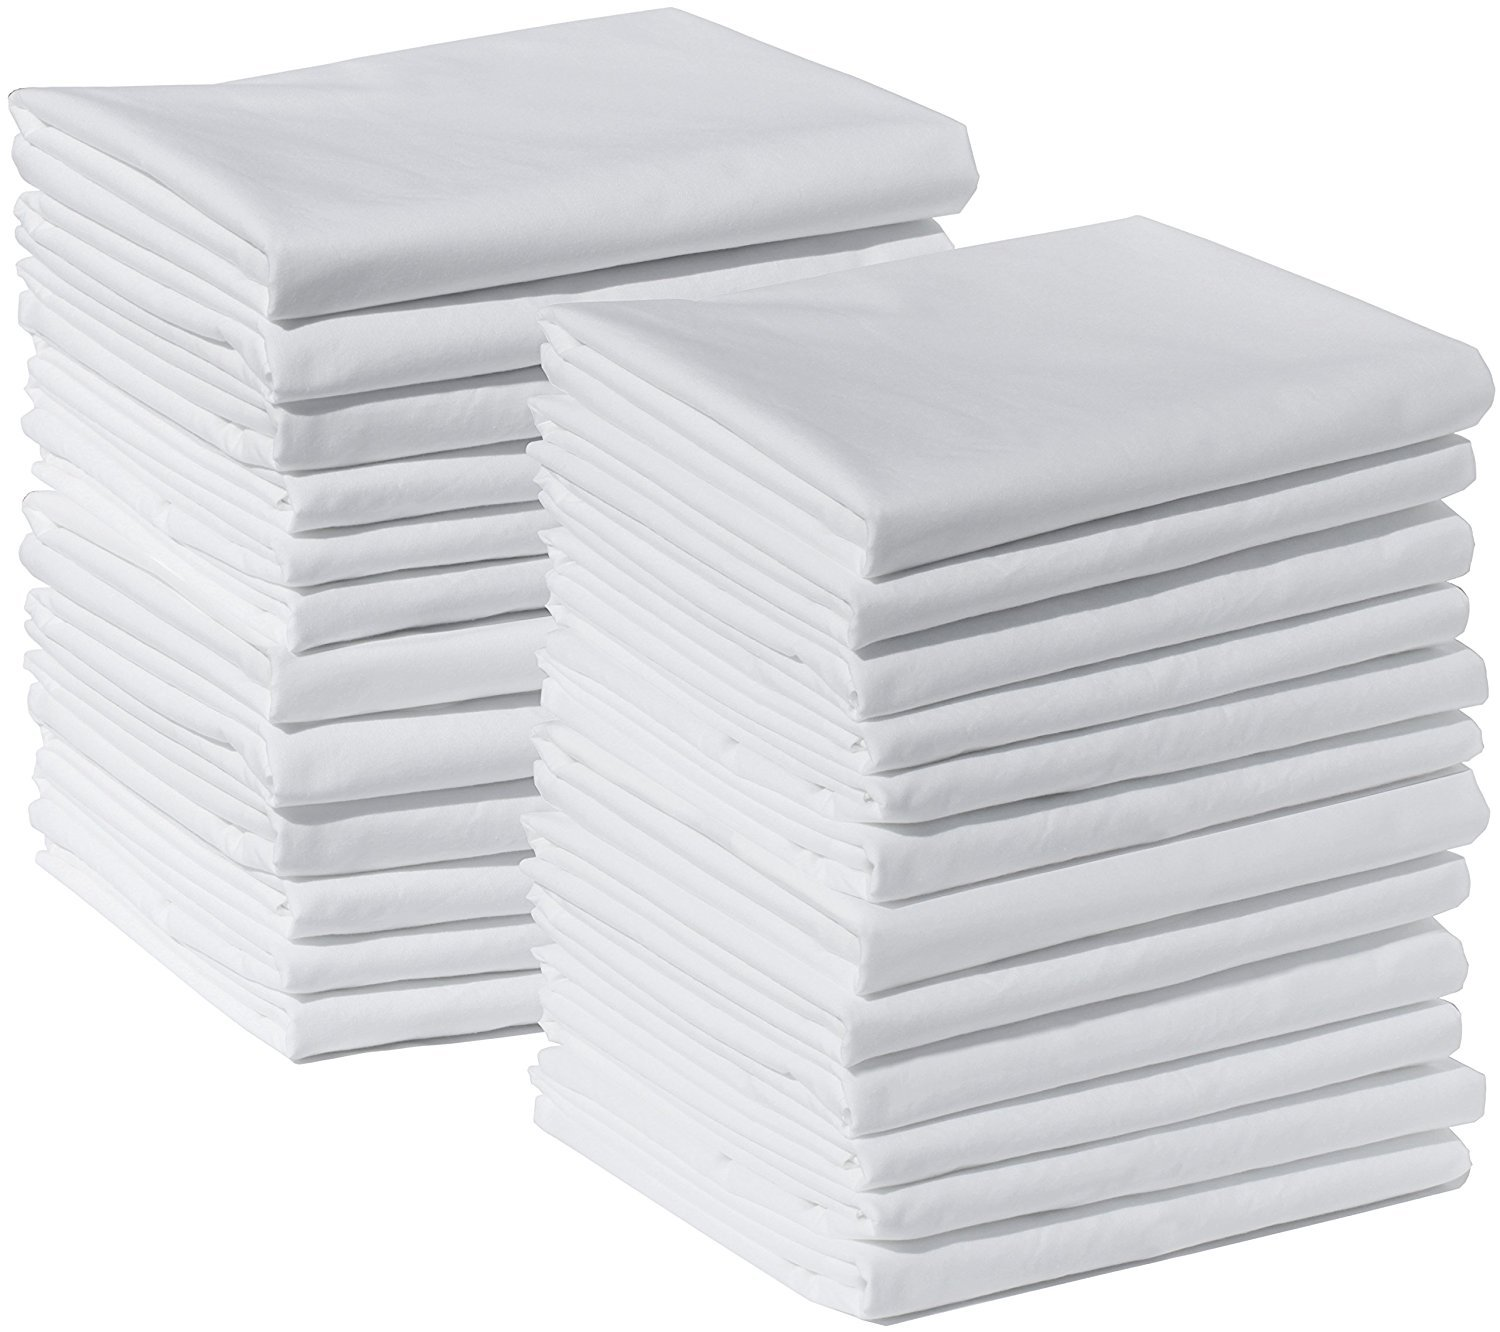 Bulk Pack of 24 King Size Pillowcases, White 300 Thread Count, 20''x40'' Solid White 2 Dozen, Perfect for Physical Therapy Clinics, Hotels, Camps